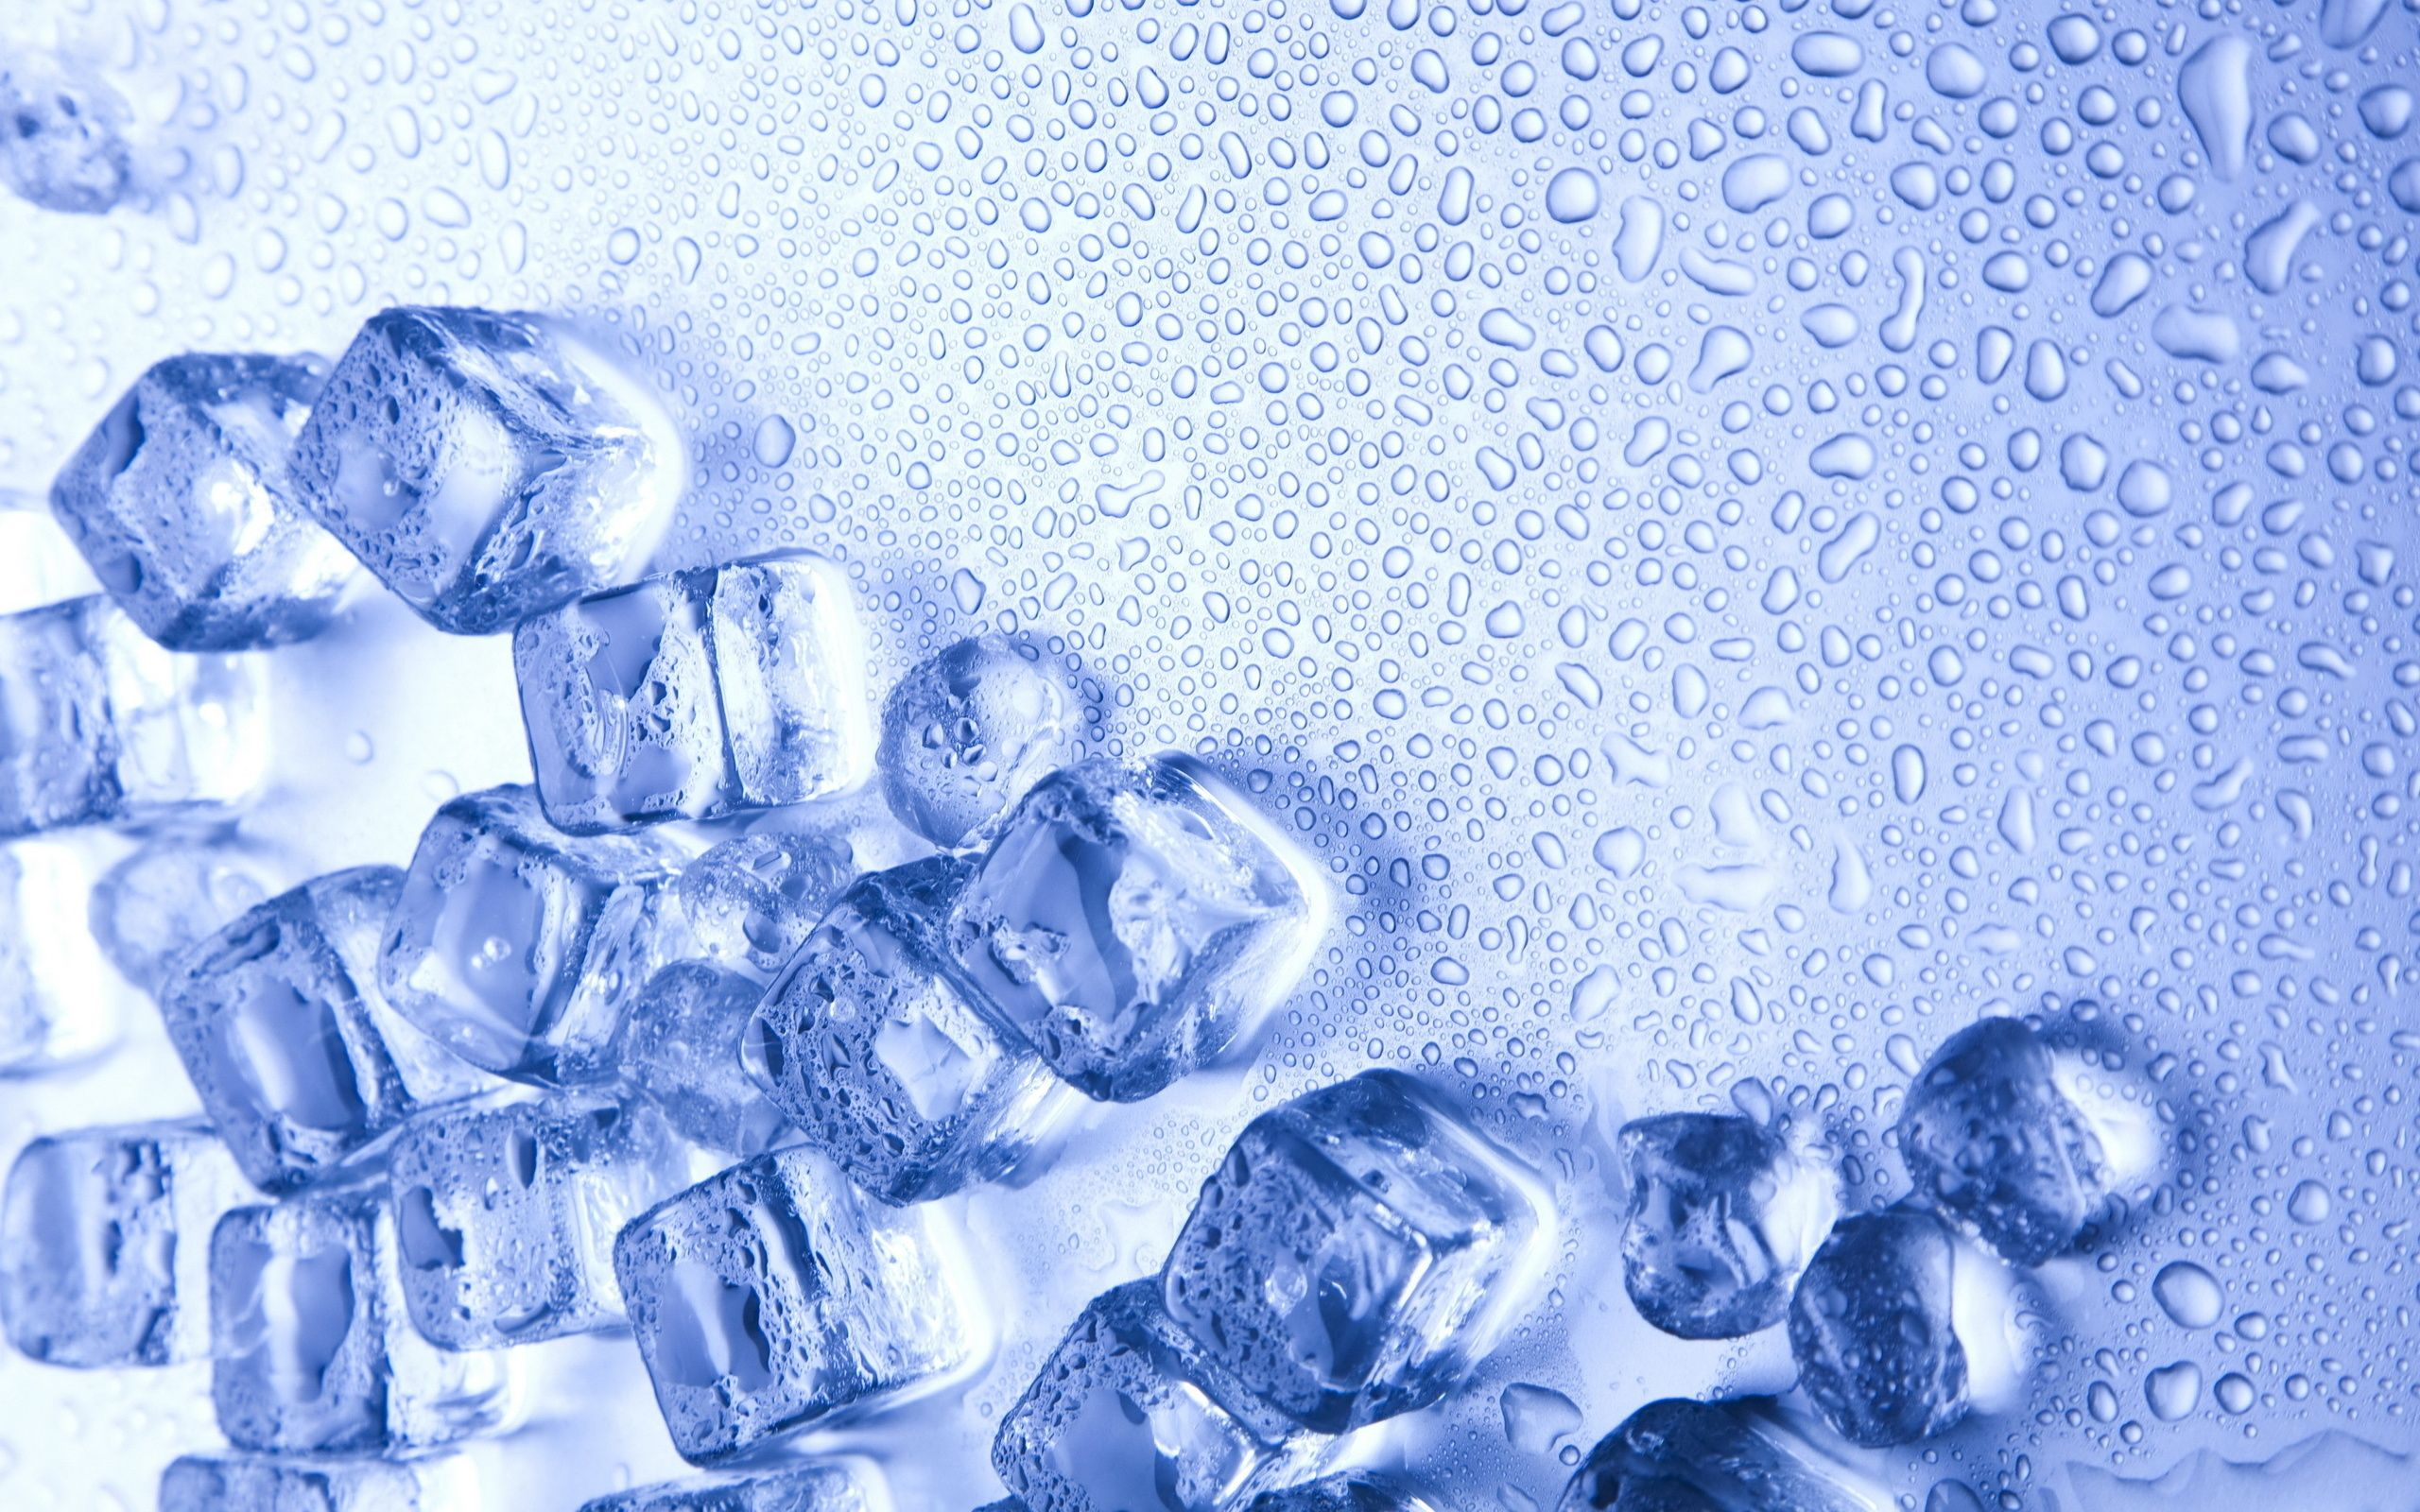 2560x1600 Hd Ice Wallpapers - Ice Cold (#630373) - HD Wallpaper Download